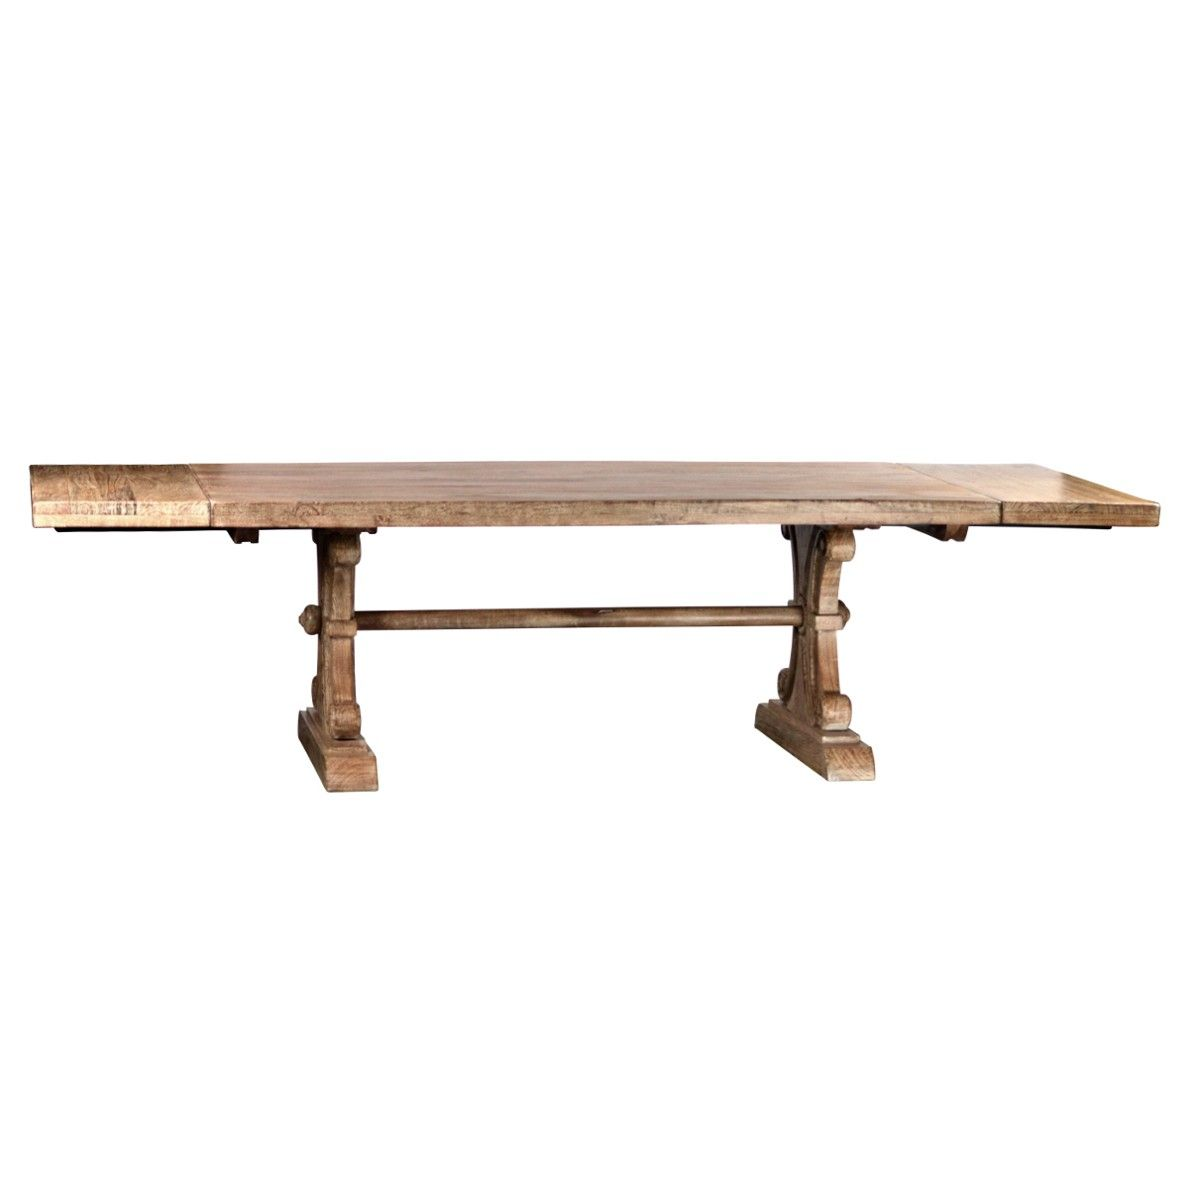 Extension 2 With Has This Dining X Roma 18 Table eEHWDI2Y9